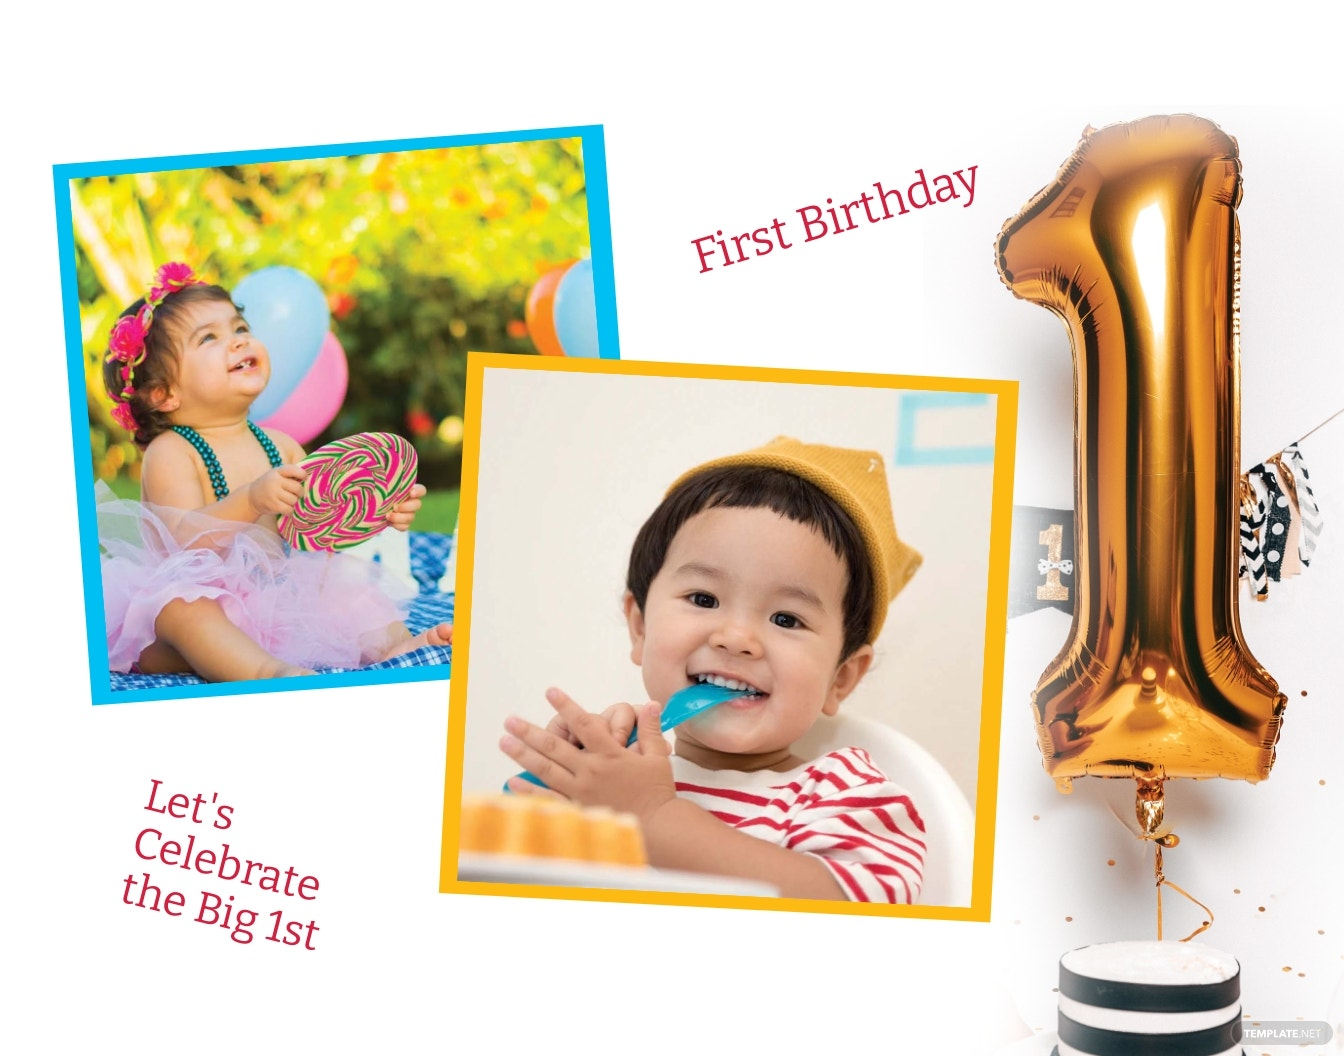 First Birthday Photo Frame Template